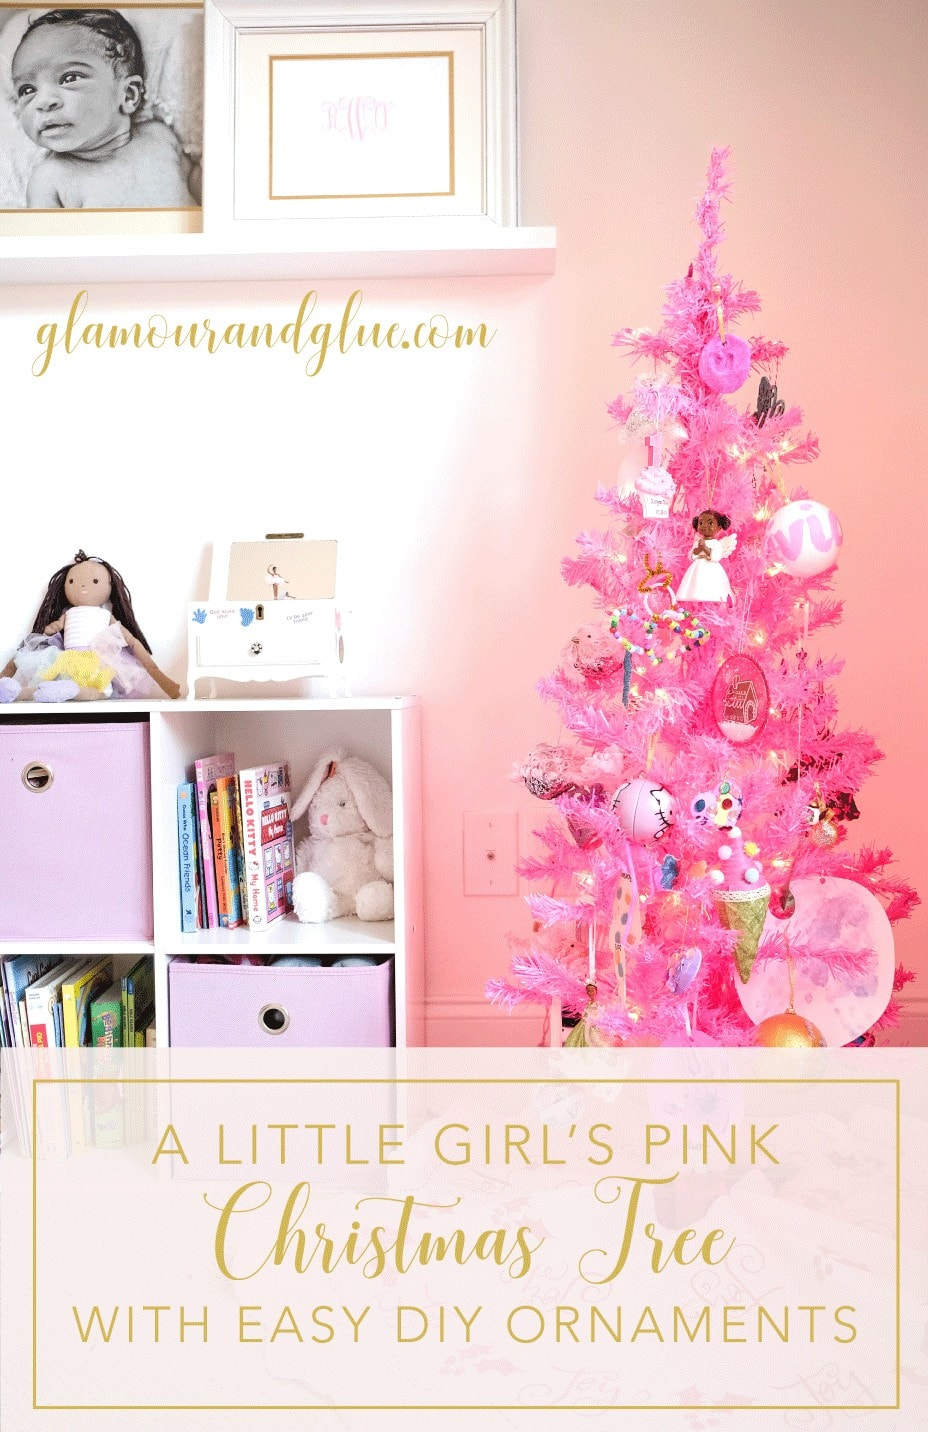 Pink Christmas Trees.The Pink Christmas Tree Glamourandglue